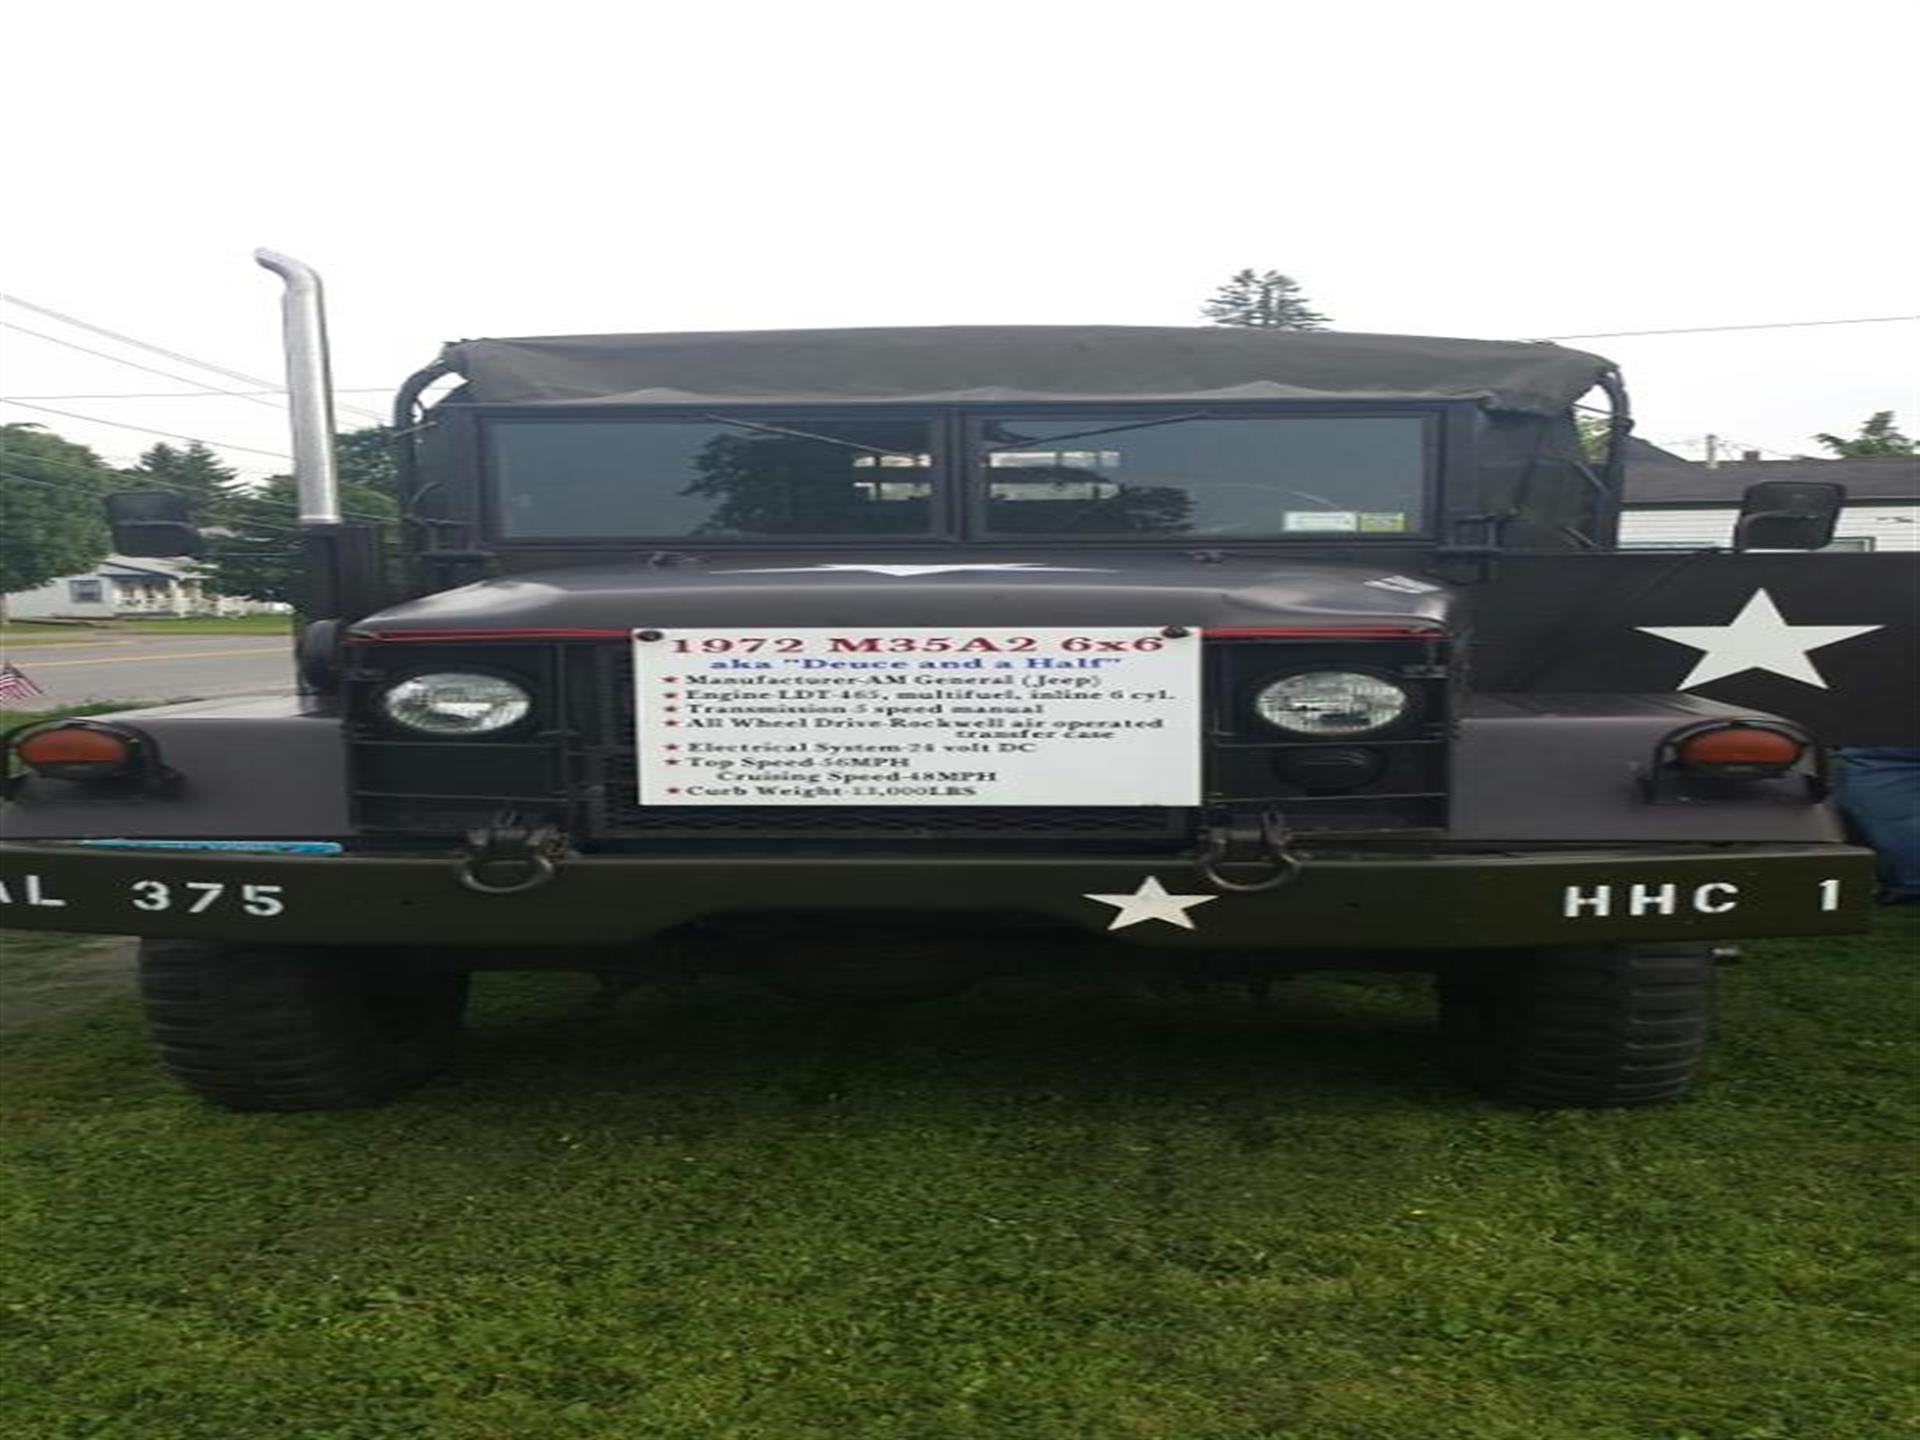 Military vehicle closeup